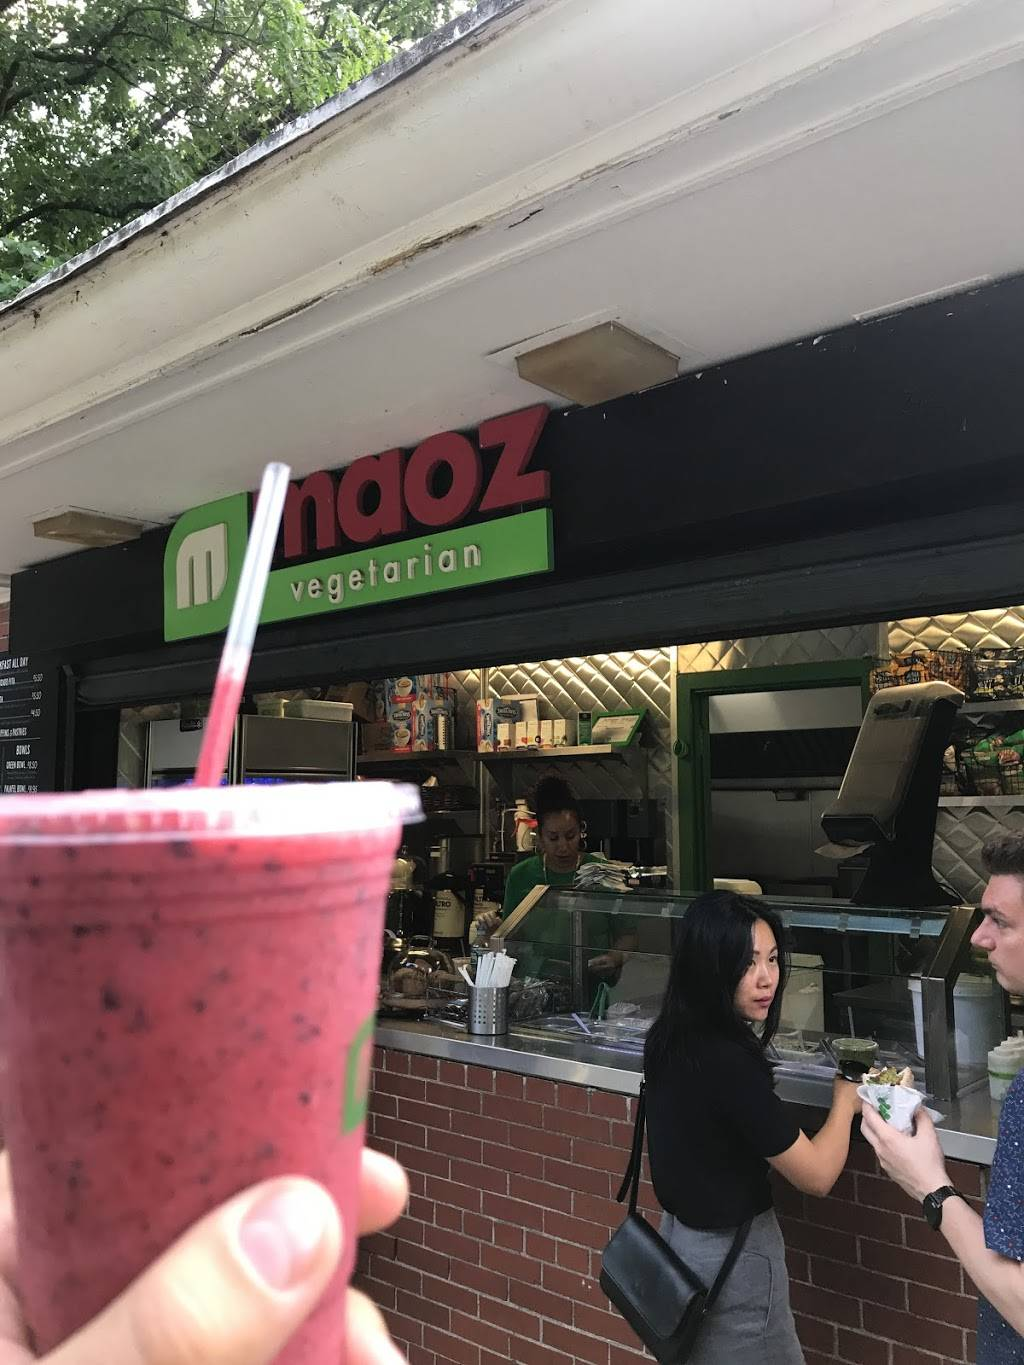 Maoz Vegetarian | restaurant | 5th Ave & E 106th St, New York, NY 10029, USA